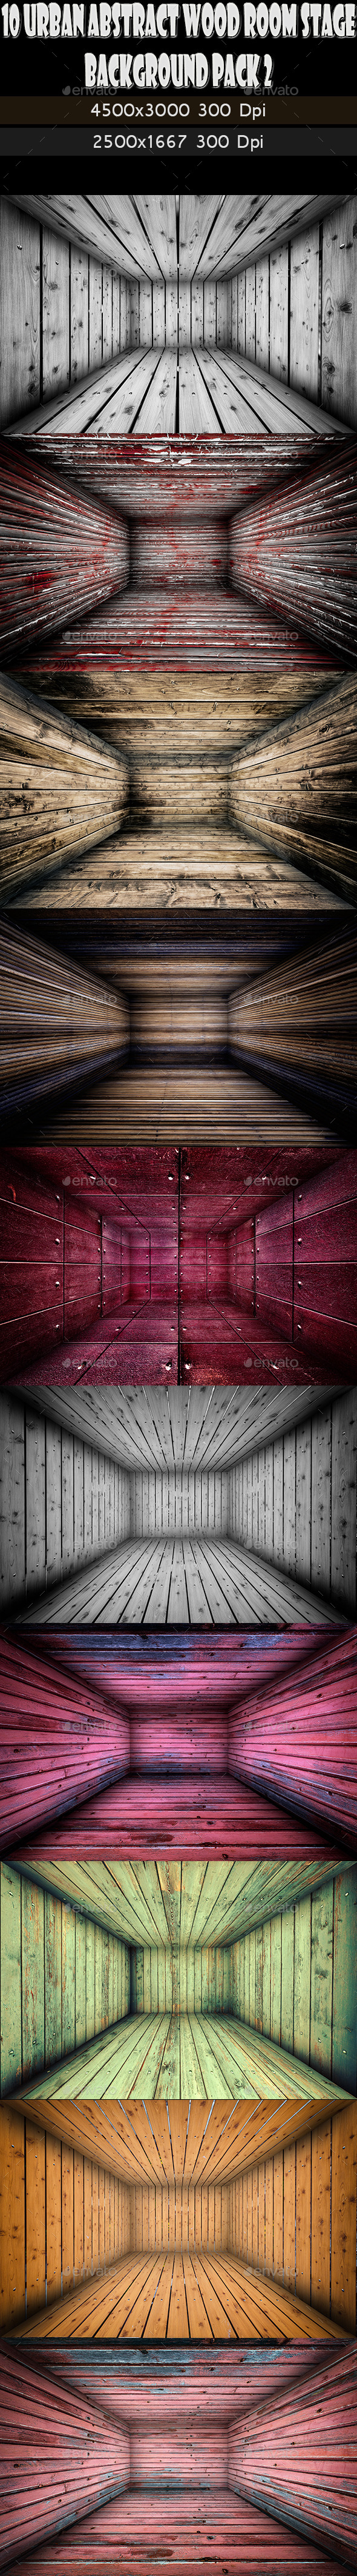 10 Abstract Wooden Interior Walls Stage 2 - Urban Backgrounds